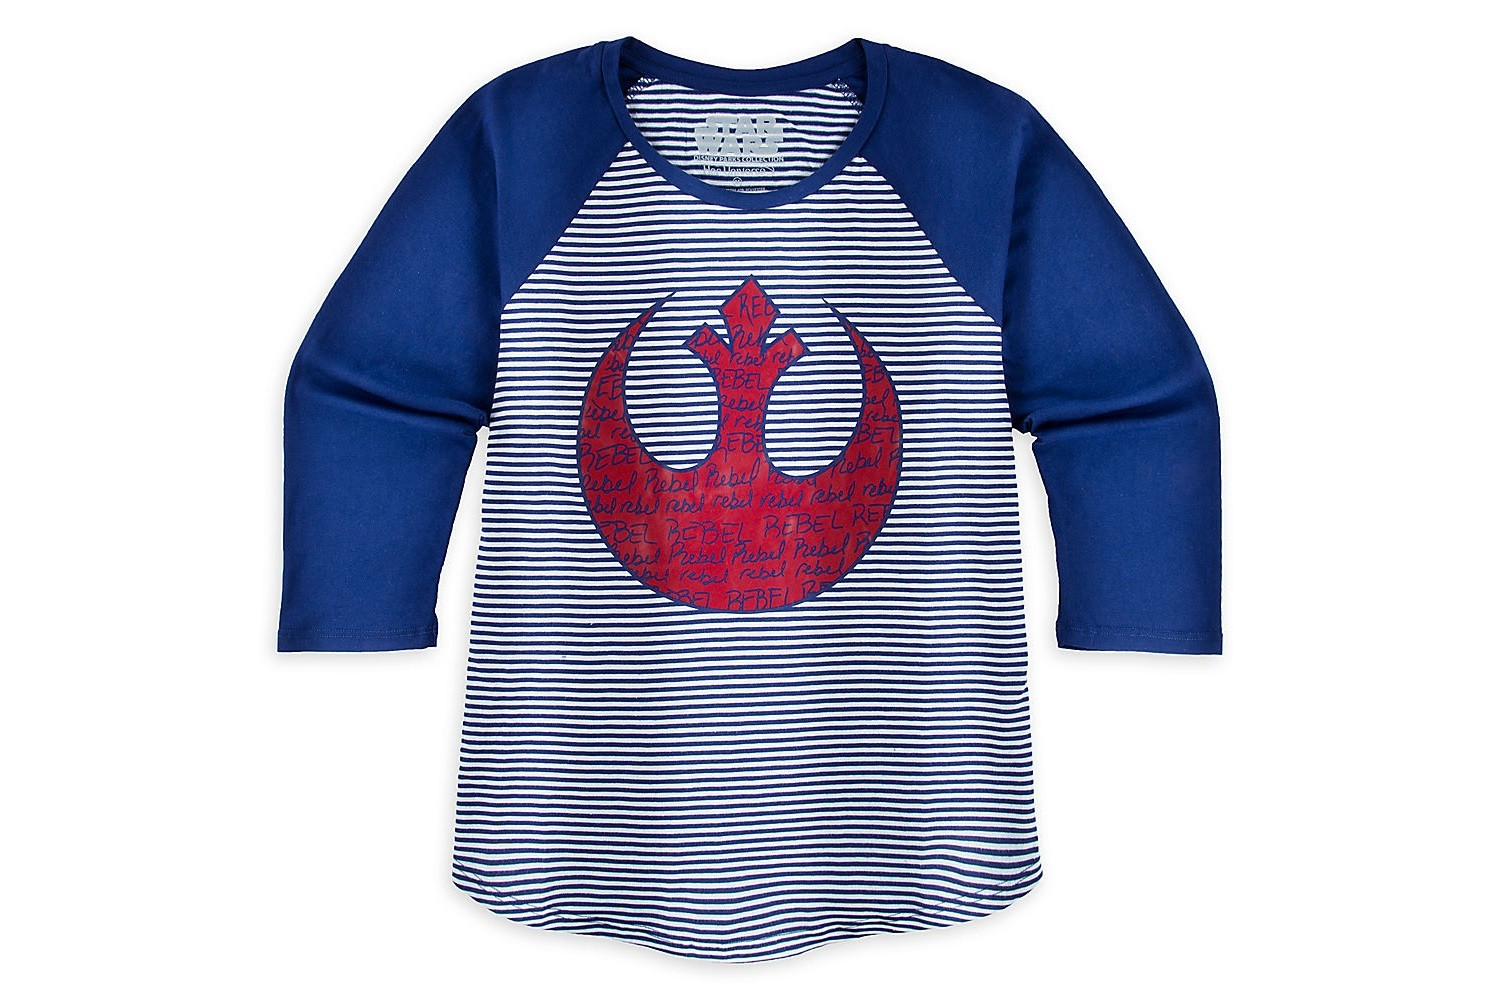 New Her Universe Rebel Alliance raglan tee